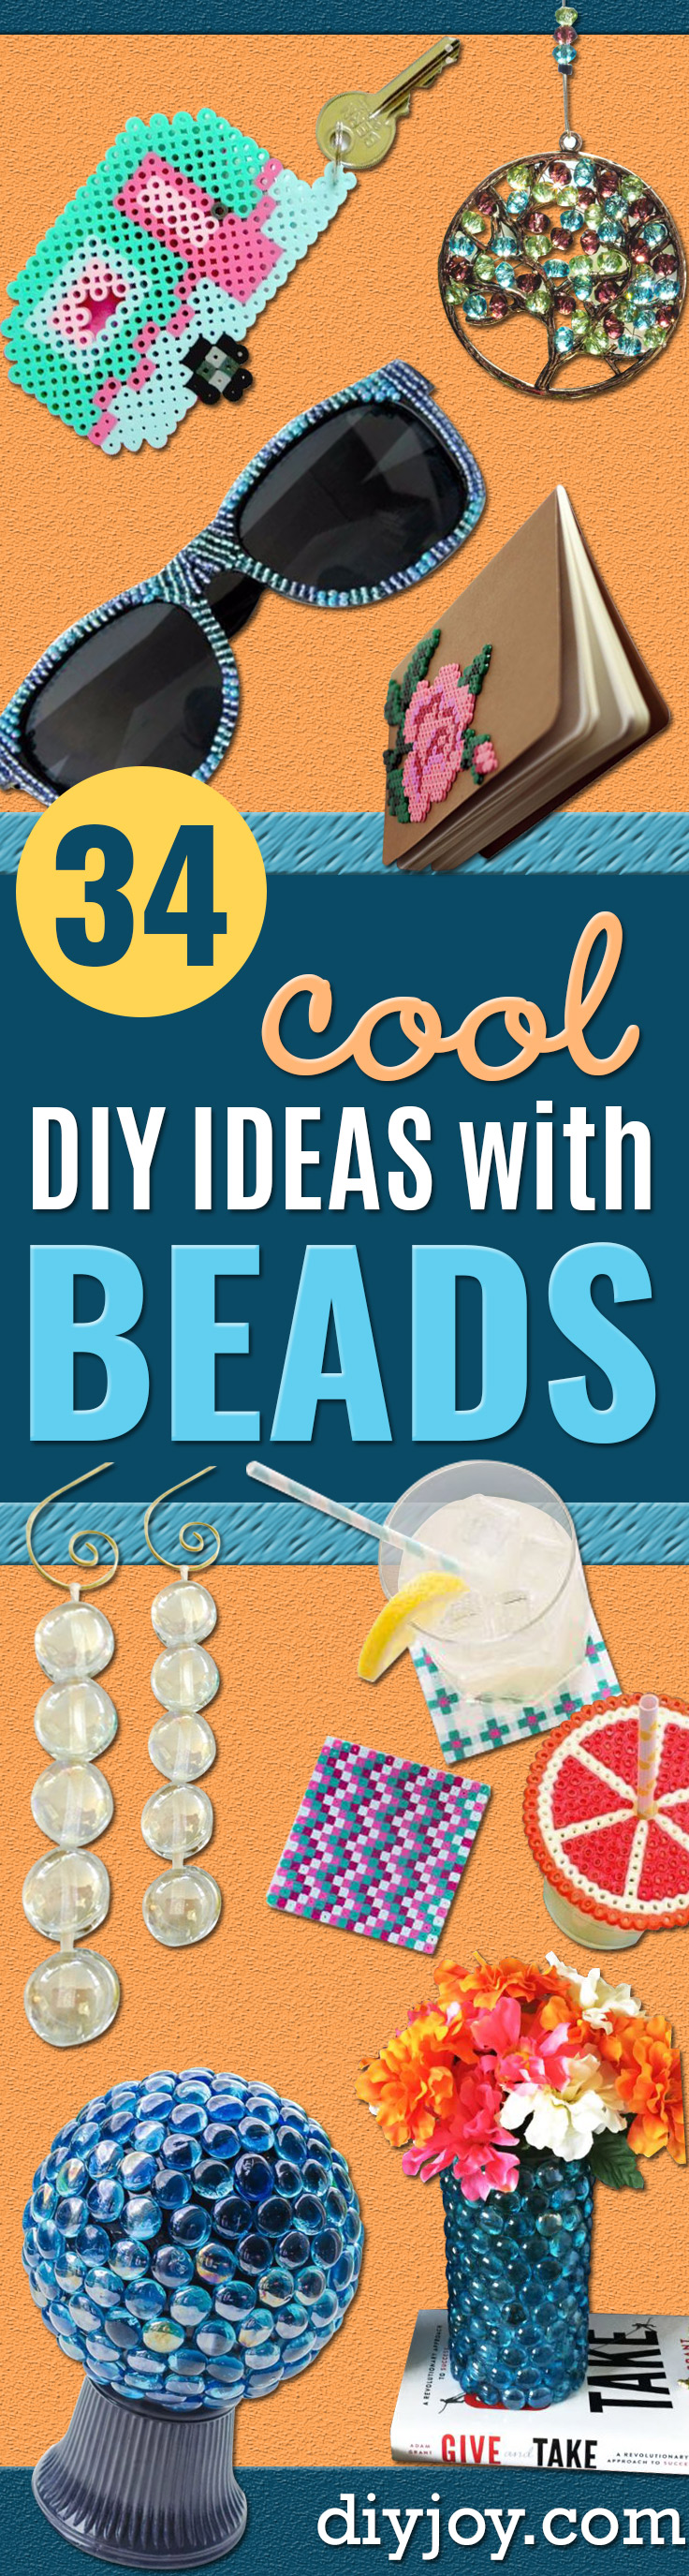 DIY Ideas With Beads - Cool Crafts and Do It Yourself Ideas Made With Beads - Outdoor Windchimes, Indoor Wall Art, Cute and Easy DIY Gifts - Fun Projects for Kids, Adults and Teens - Bead Project Tutorials With Step by Step Instructions - Best Crafts To Make and Sell on Etsy